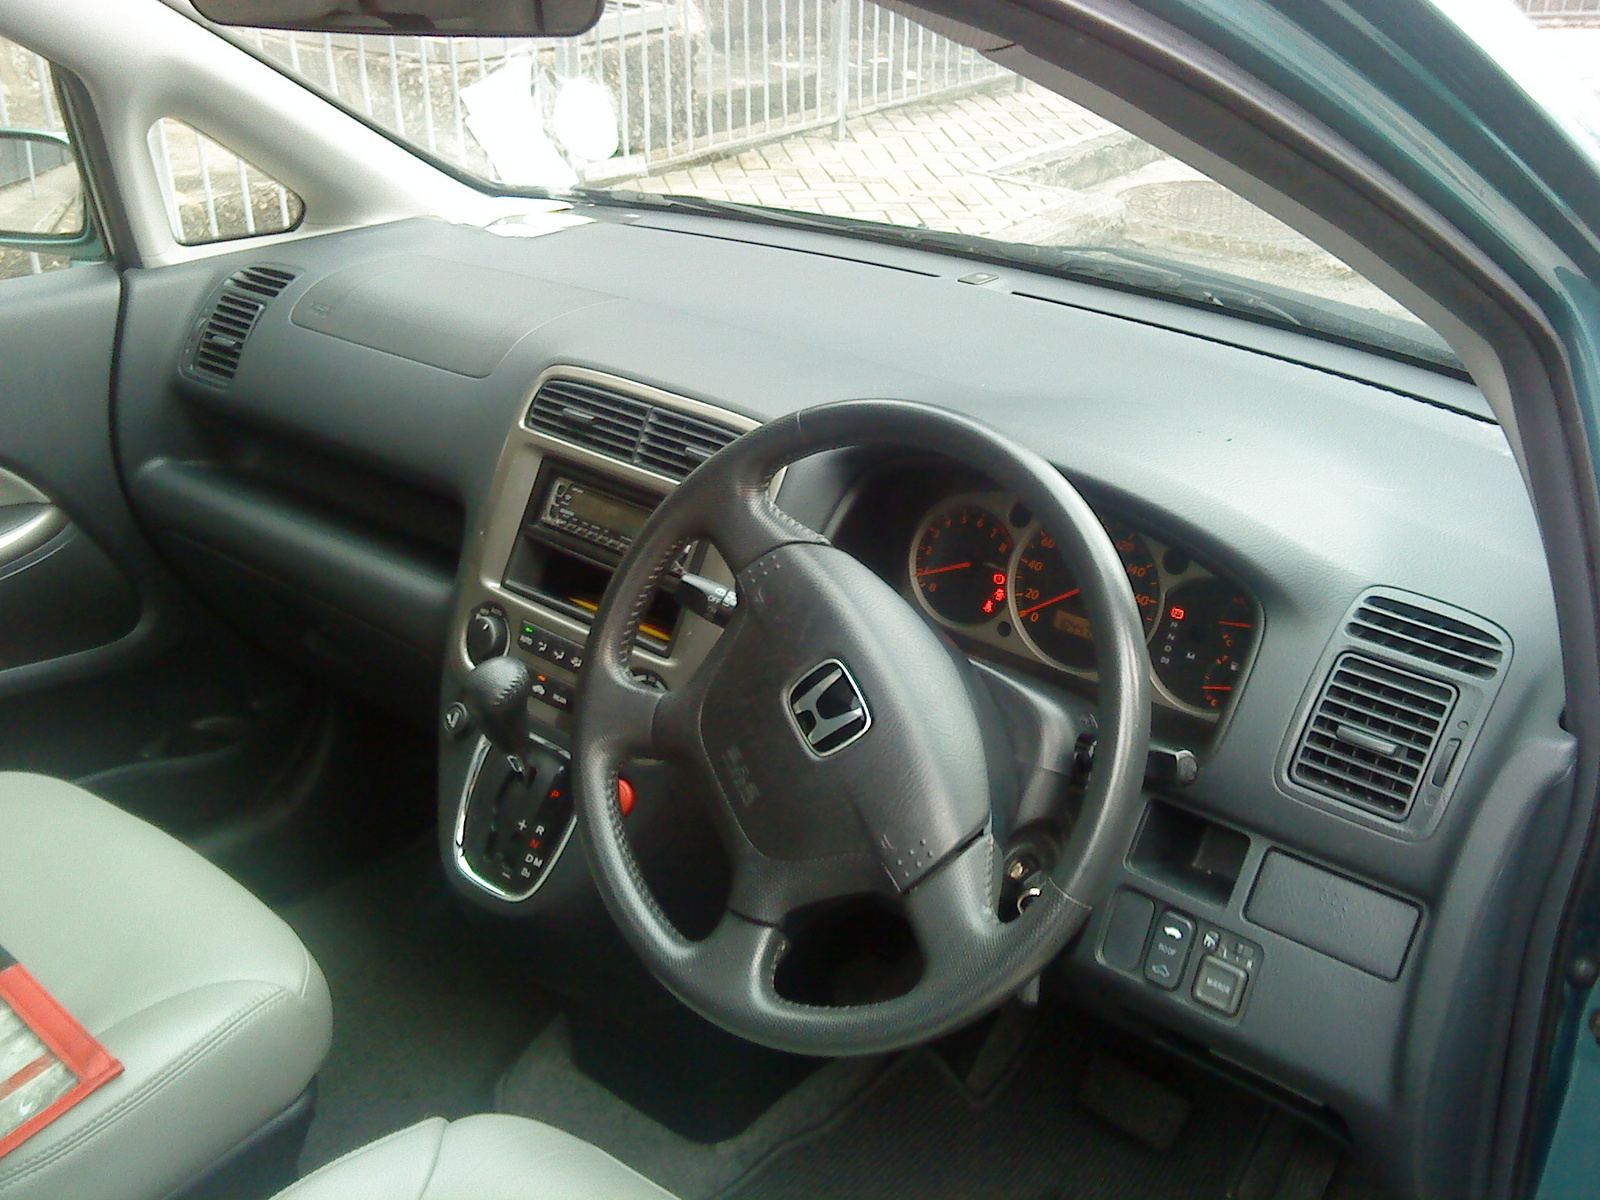 2001 Honda Stream picture, interior